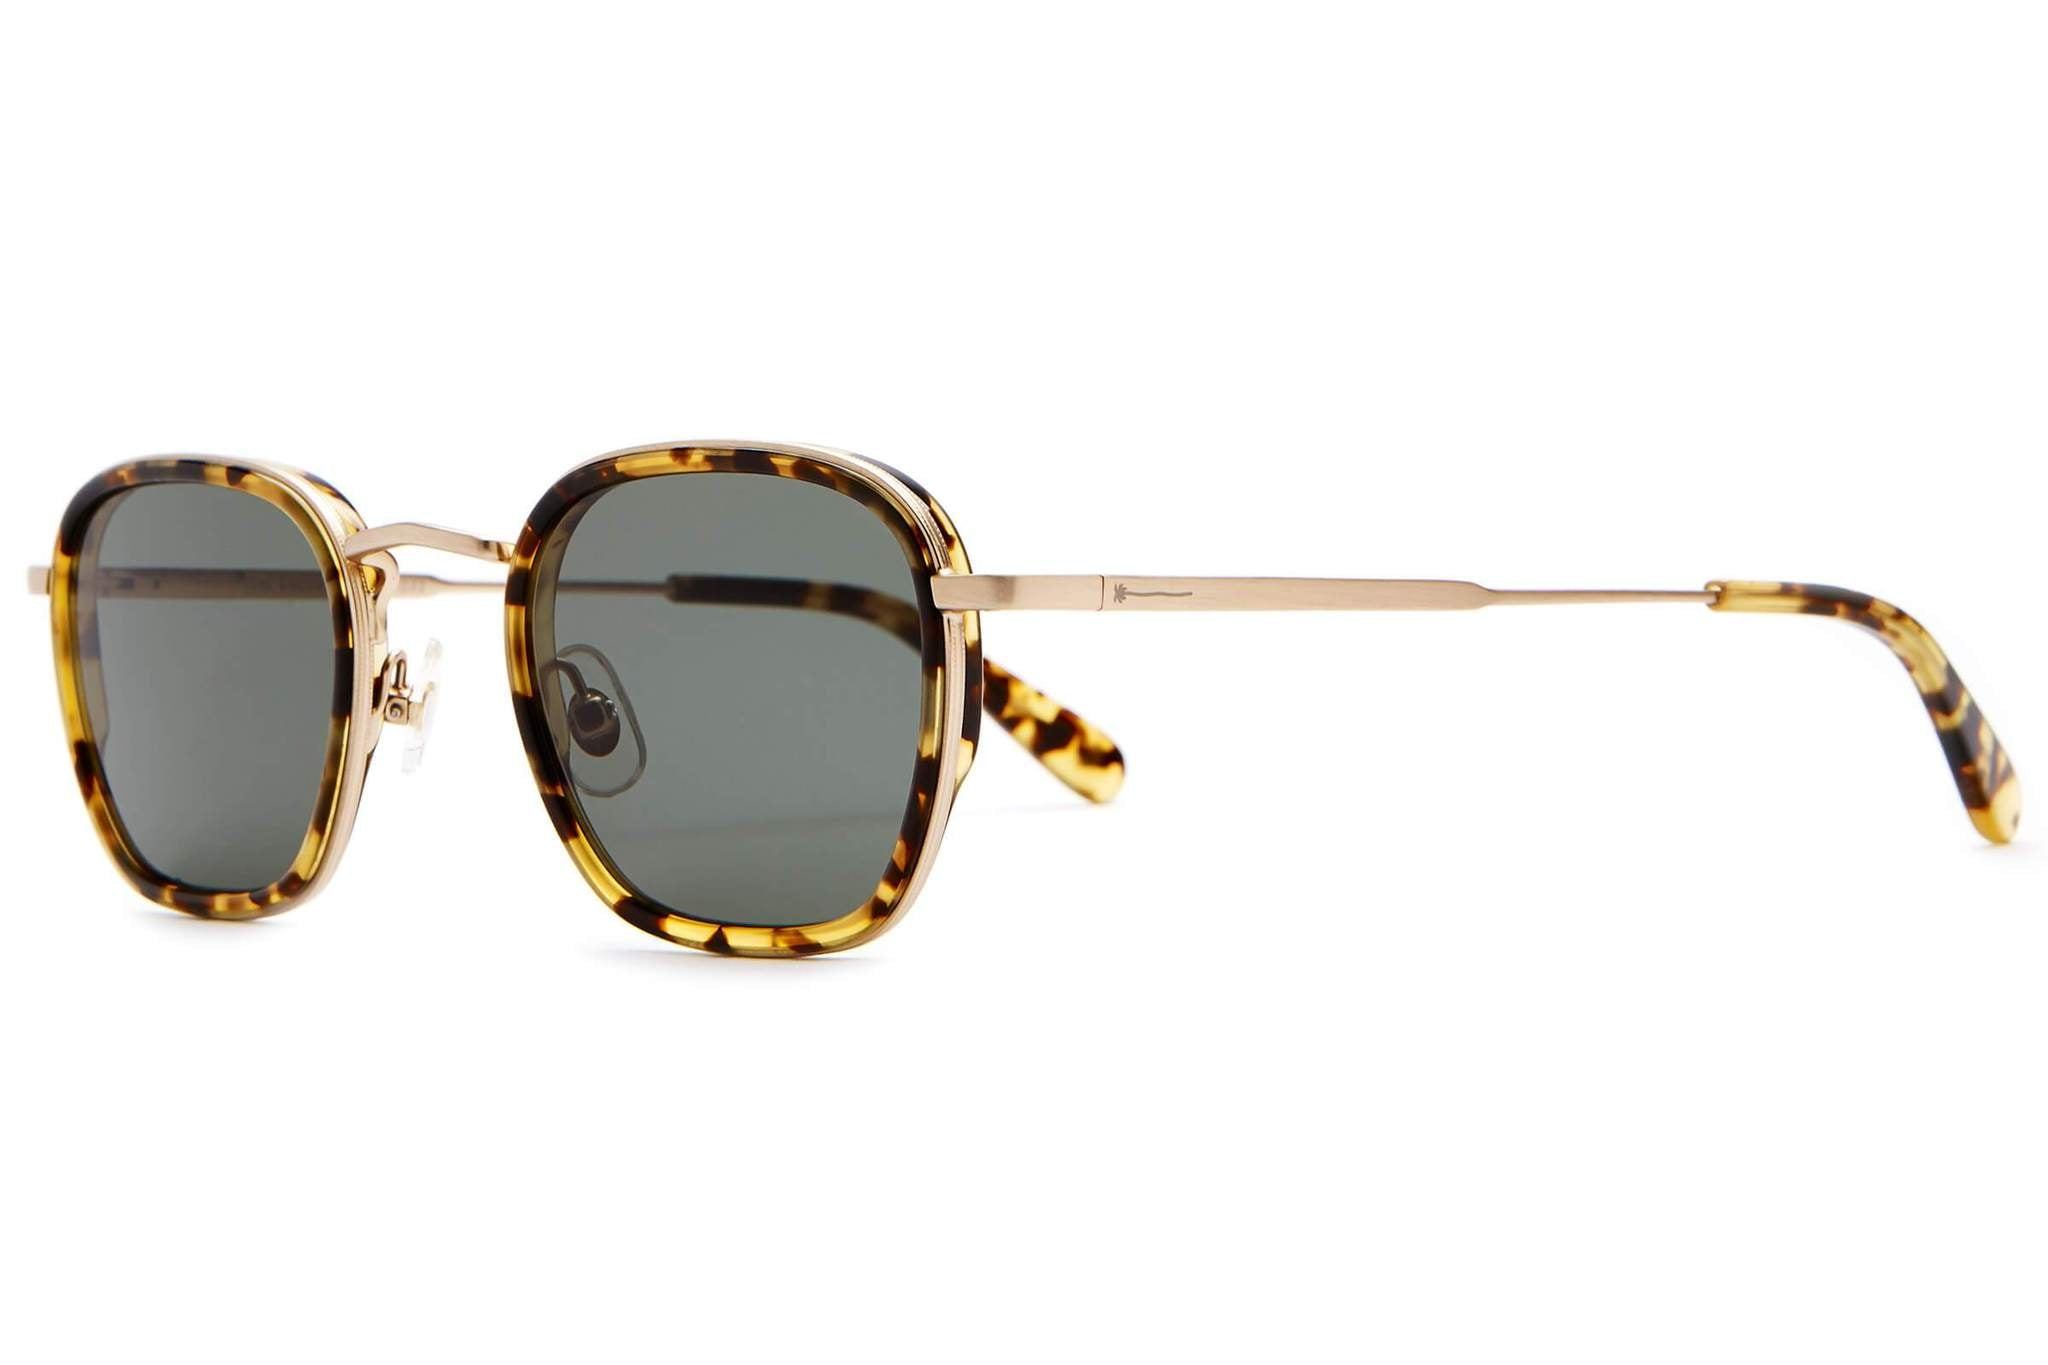 THE GROOVE PILOT / BRUSHED GOLD & TOKYO TORTOISE